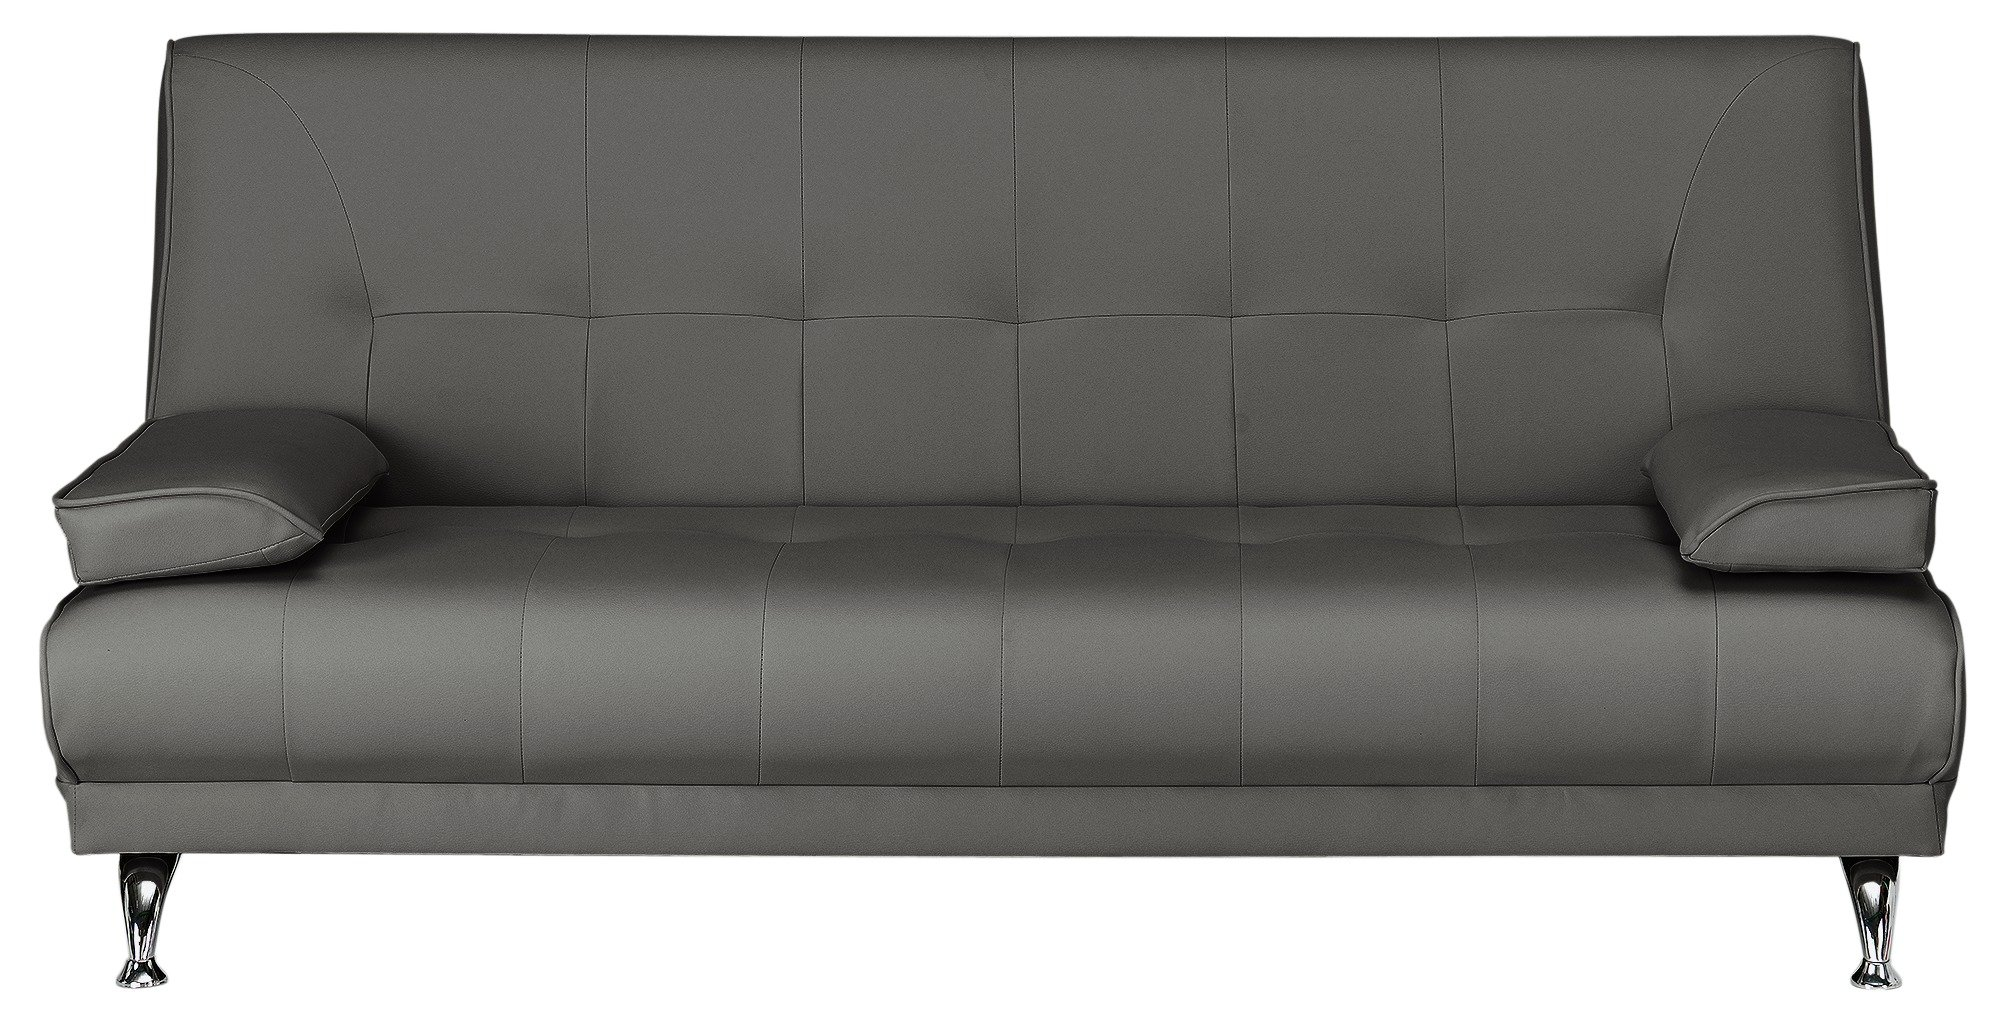 Buy Argos Home Sicily 2 Seater Clic Clac Sofa Bed Charcoal Sofa